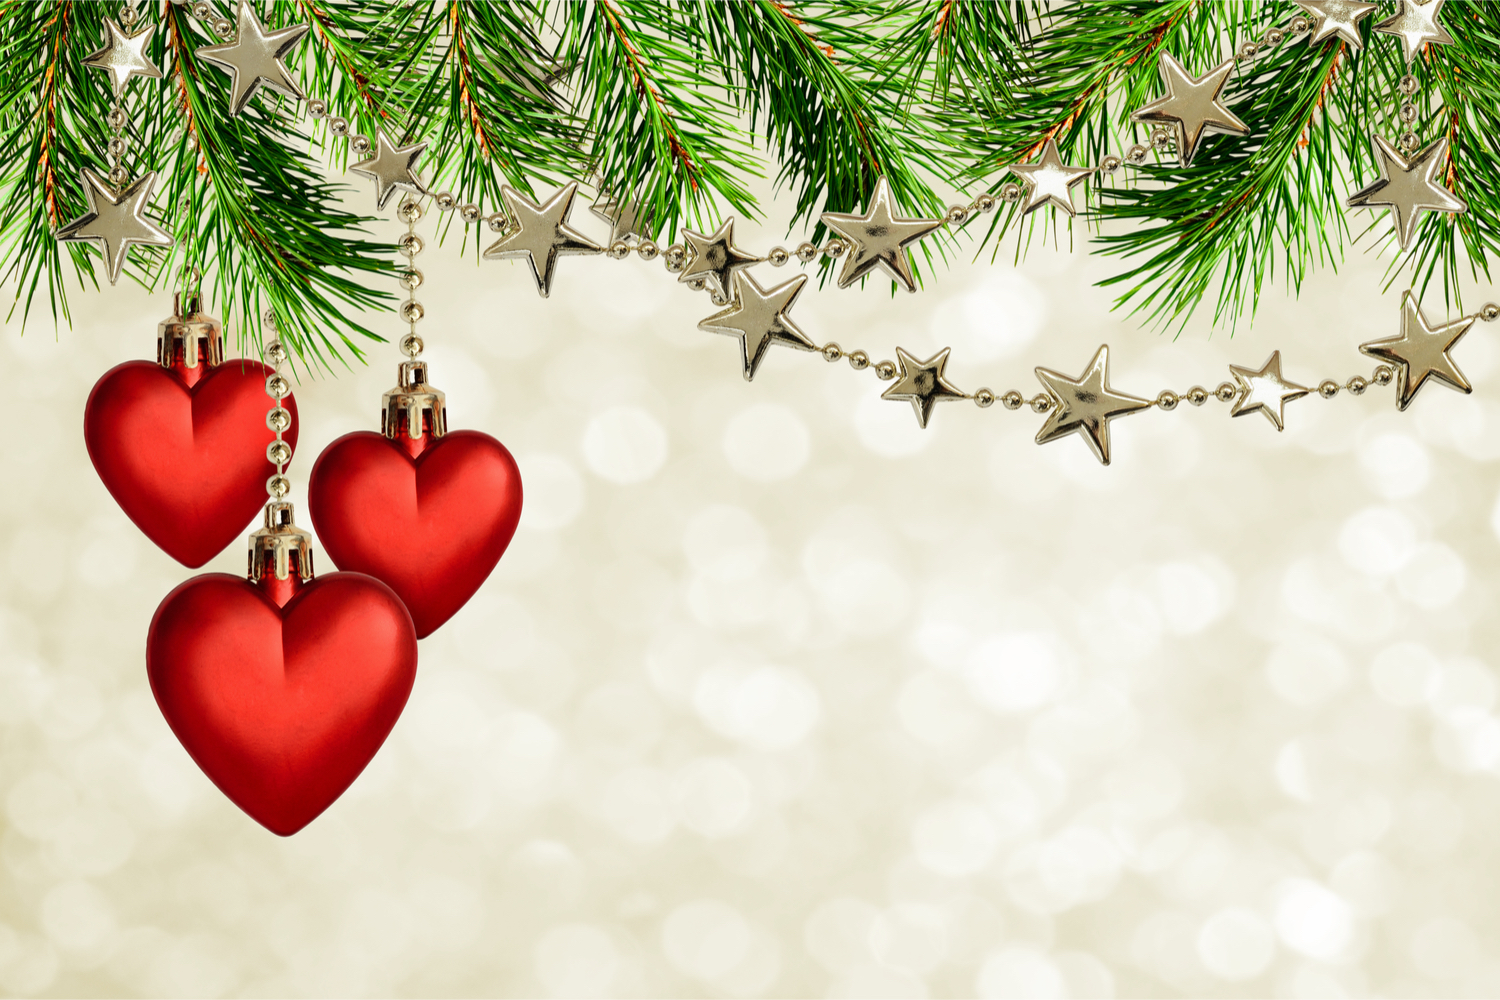 How Can I Show the Love of Jesus During Christmas? | Kenneth ...